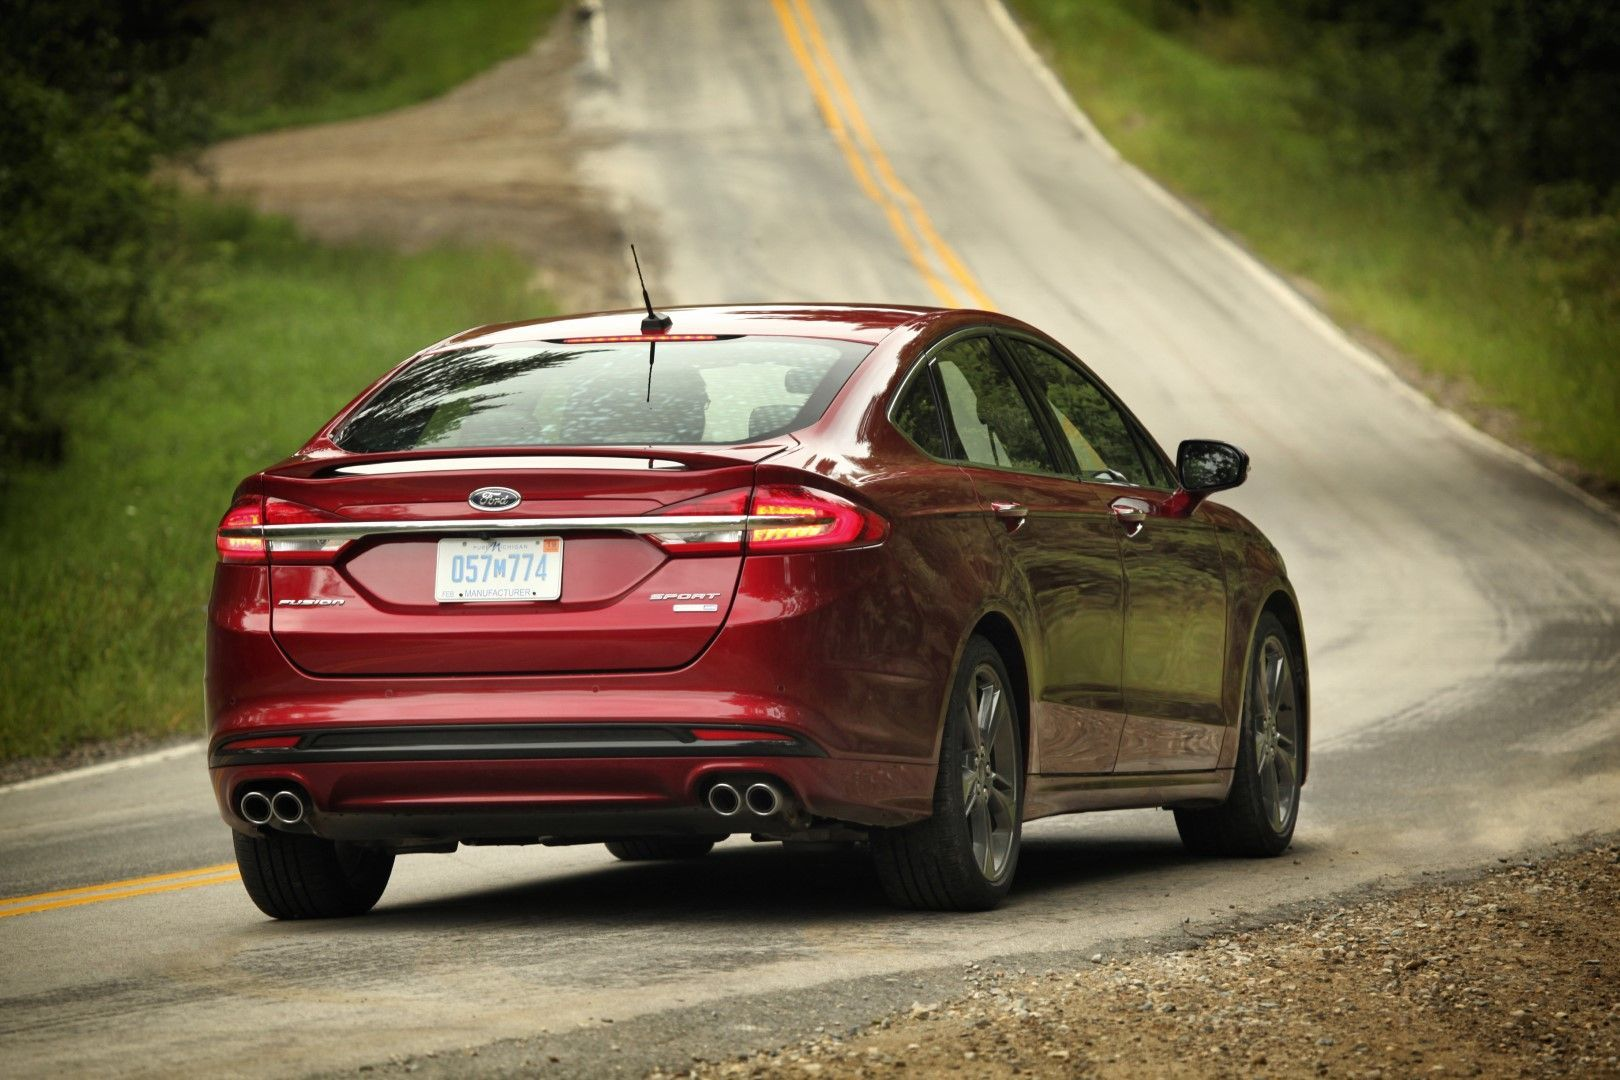 20172018 Ford Fusion Sport 2.7liter DOHC twinturbo V6